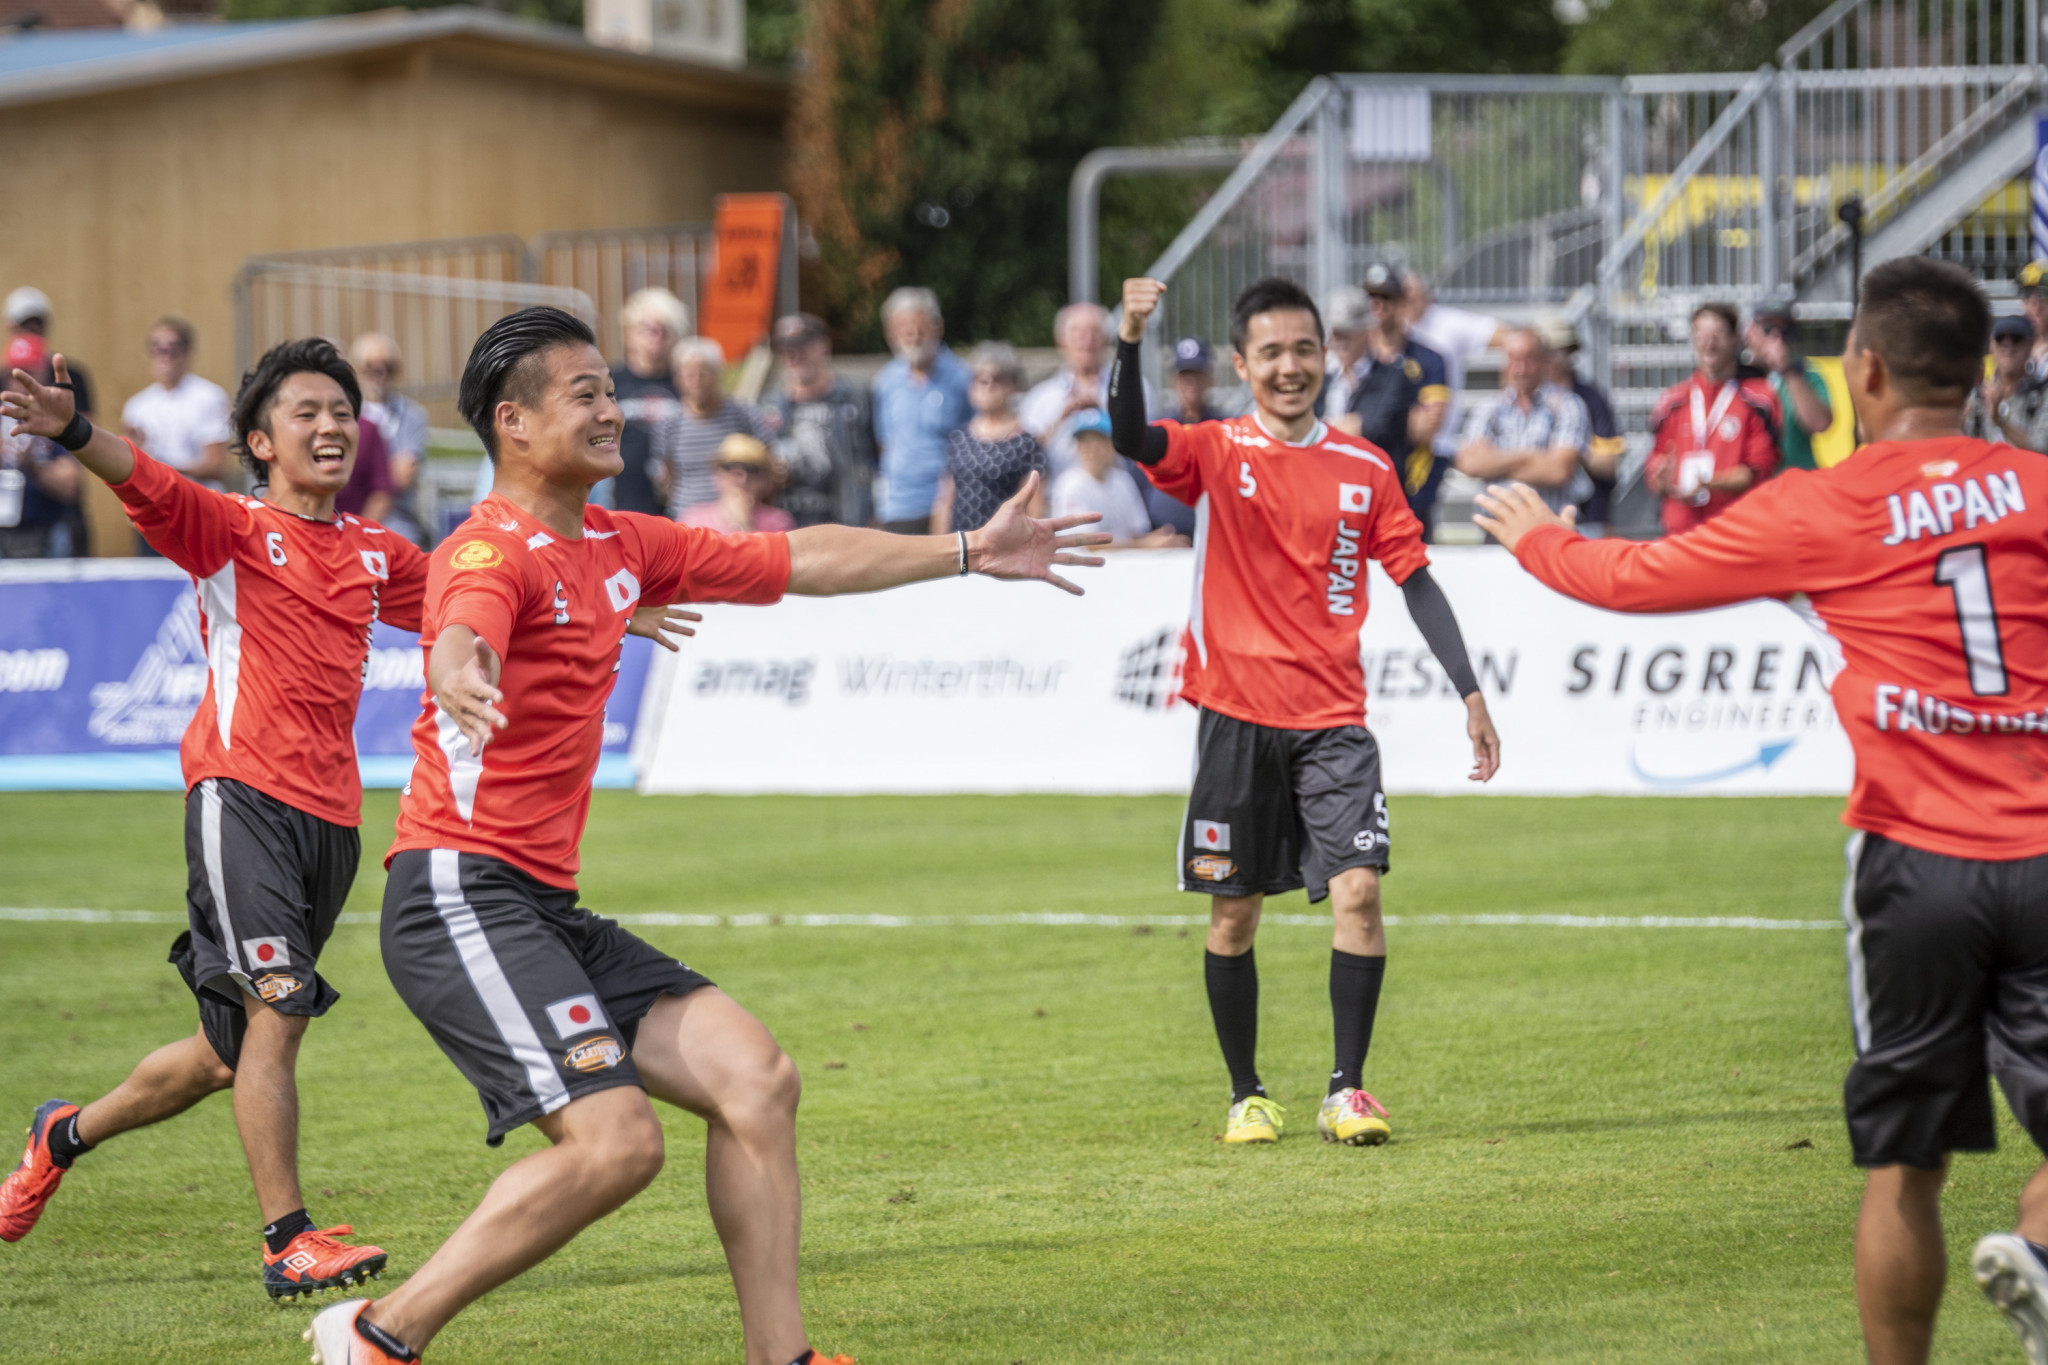 Japan claimed a memorable 3-1 win over The Netherlands in Group D ©IFA 2019 Fistball World Championship